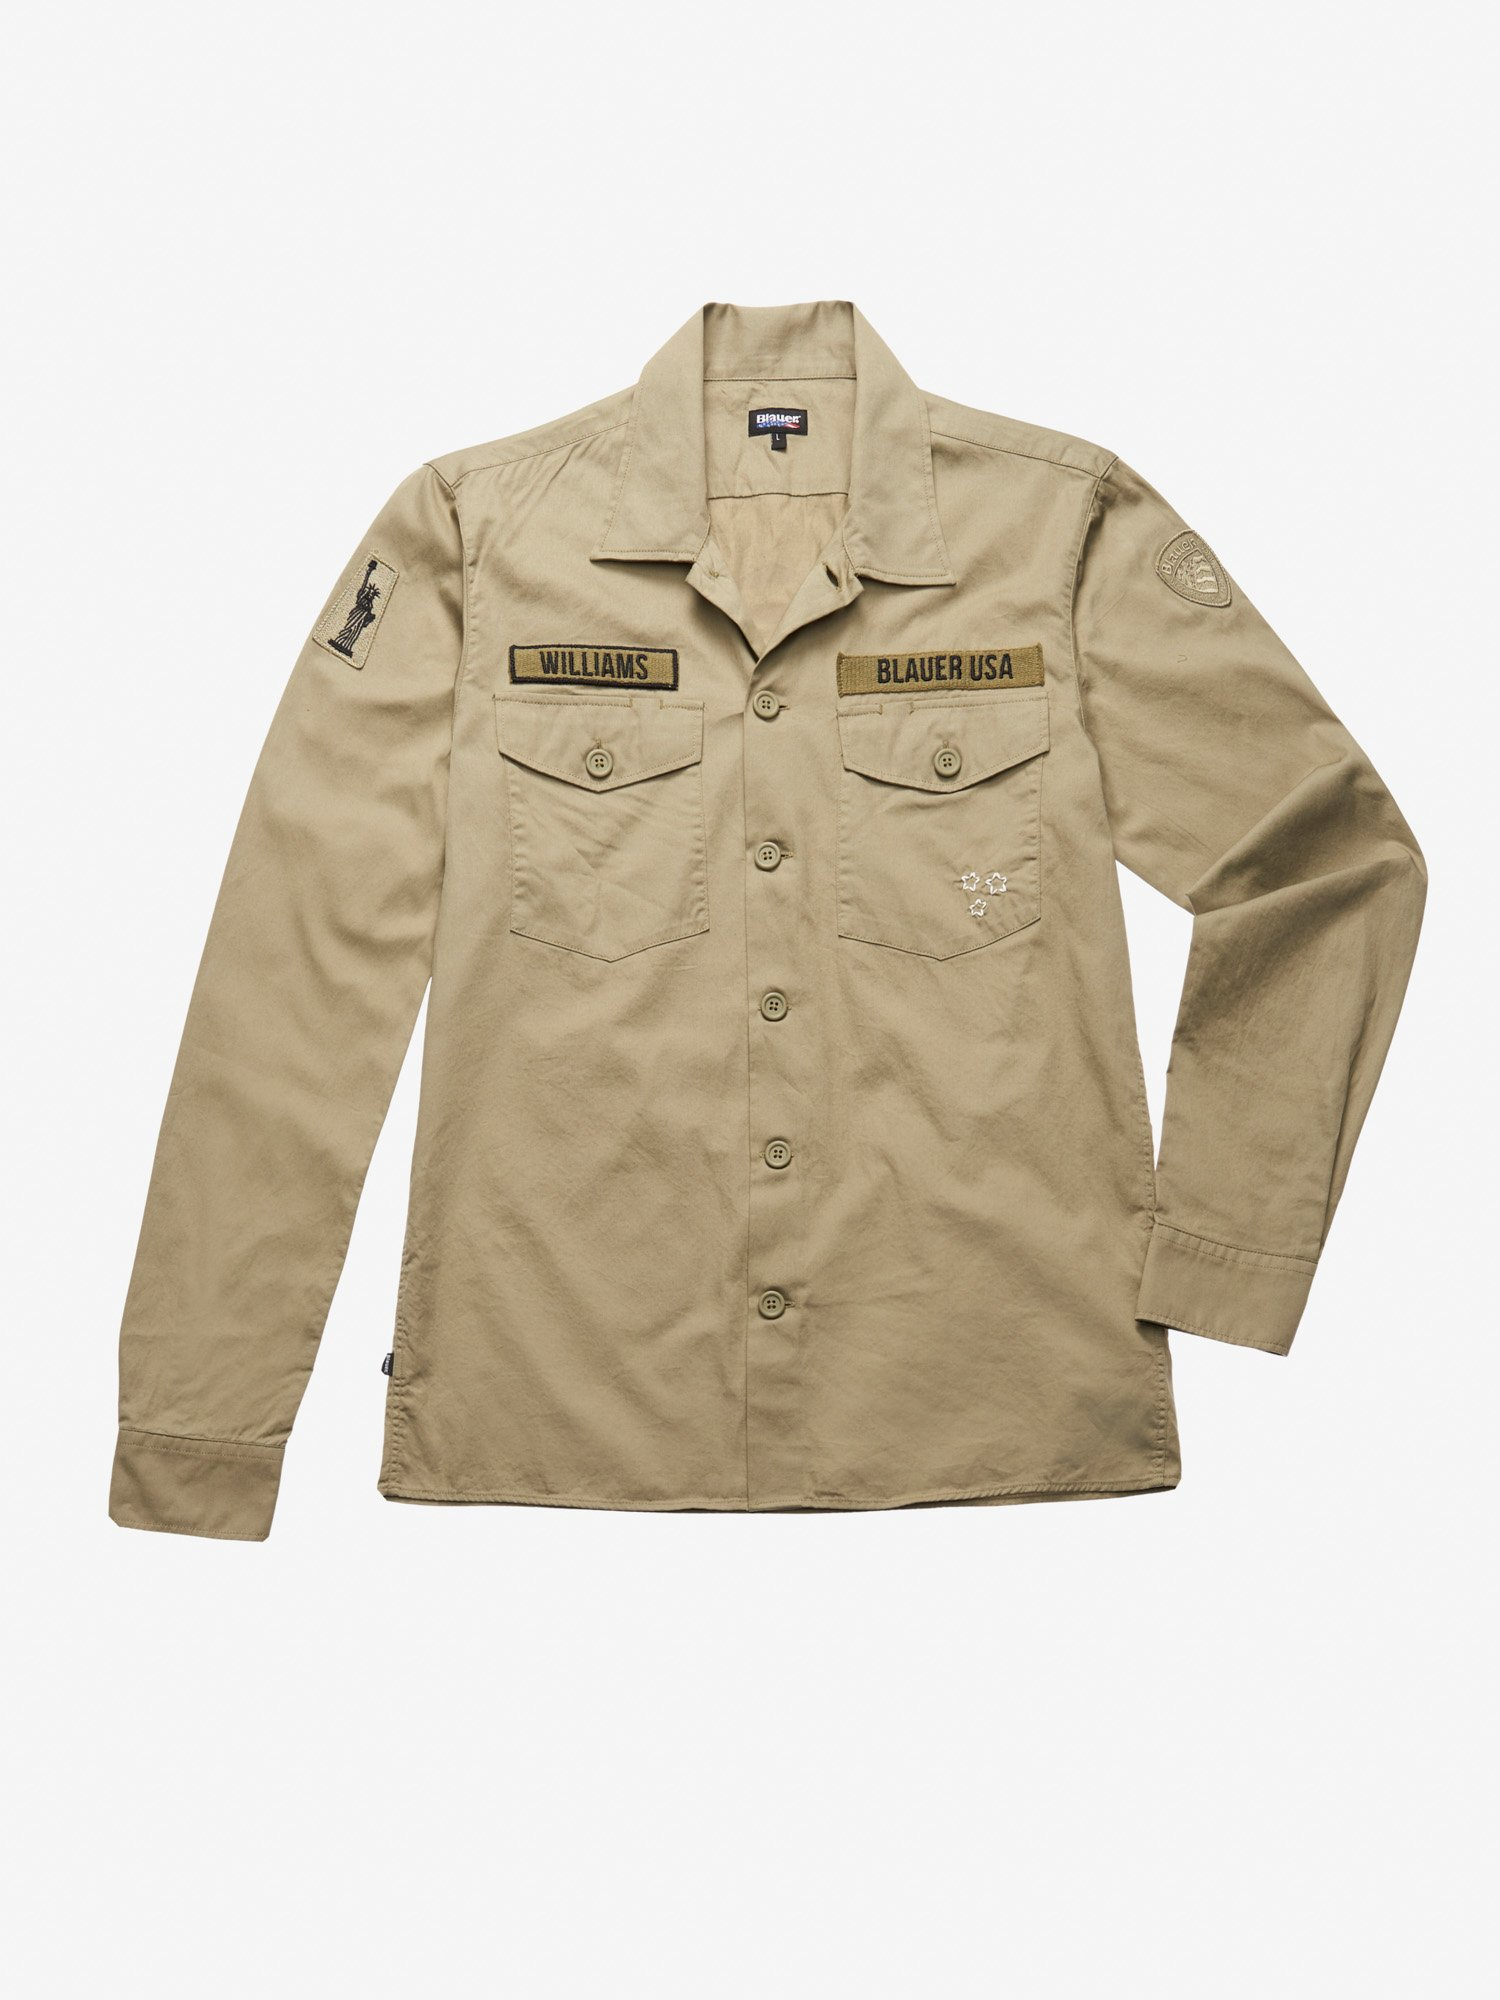 WILLIAMS MILITARY SHIRT - Blauer